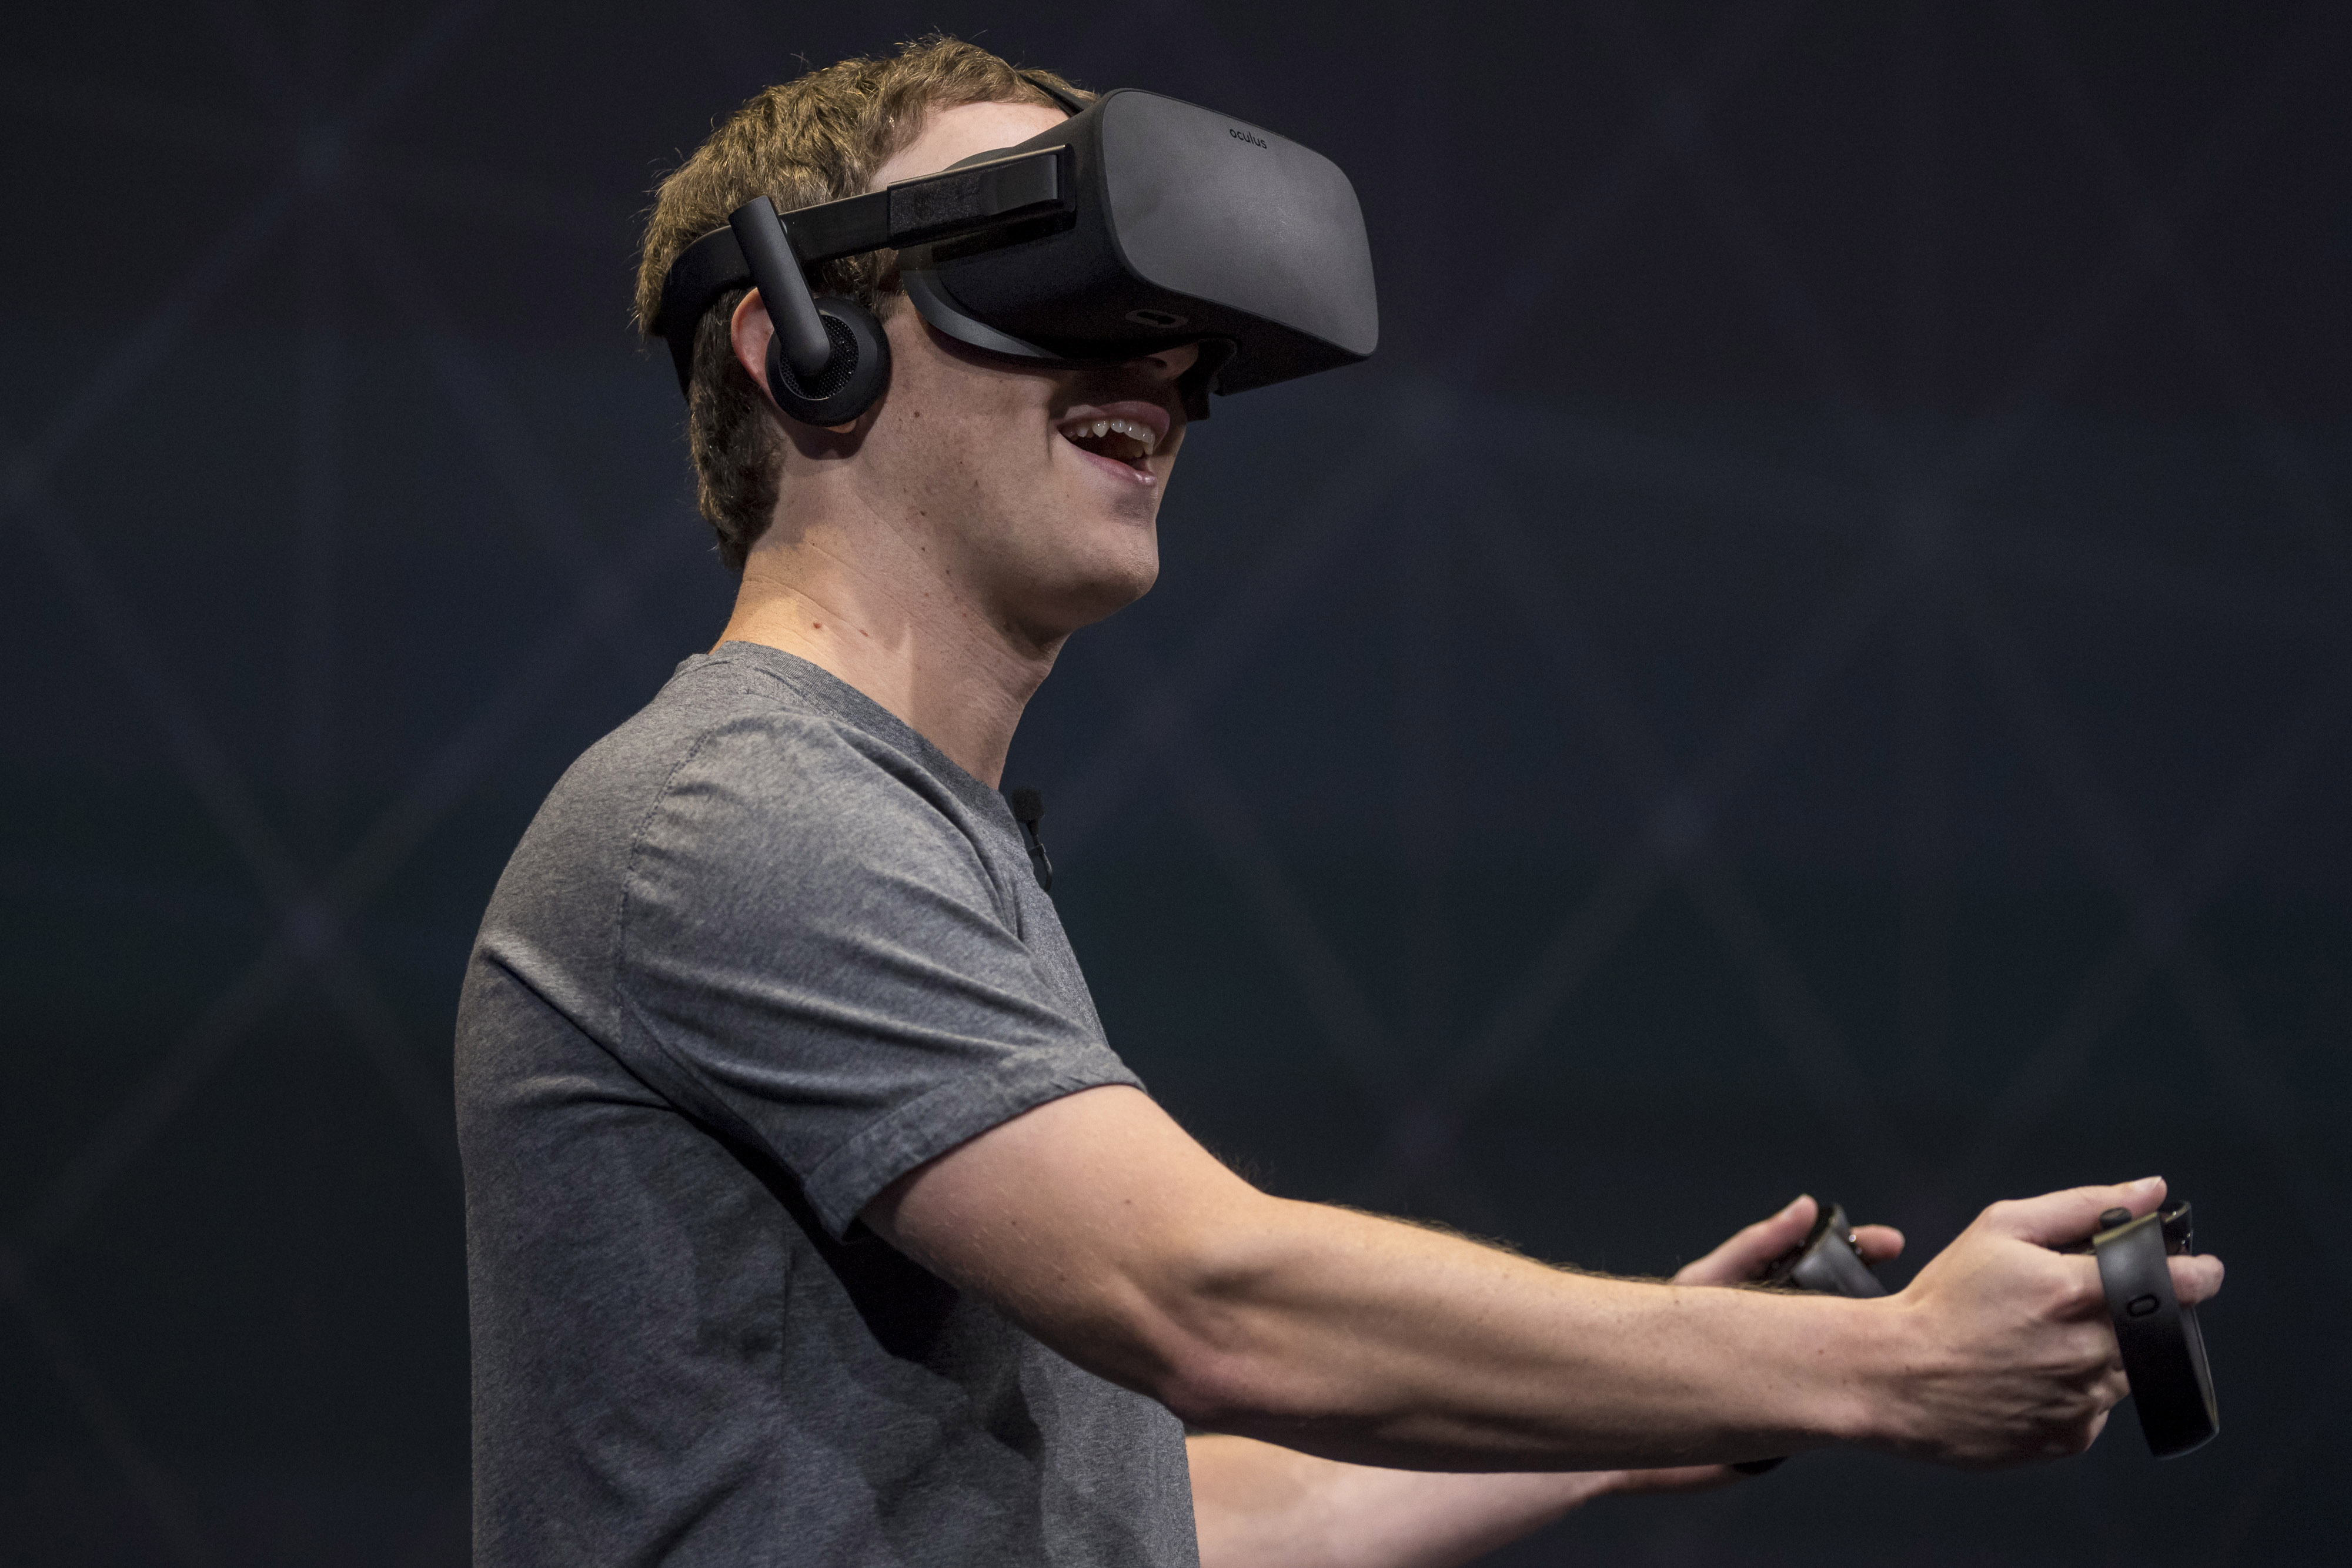 Mark Zuckerberg, chief executive officer and founder of Facebook Inc., demonstrates an Oculus Rift virtual reality (VR) headset and Oculus Touch controllers as the gives a demonstration during the Oculus Connect 3 event in San Jose, California, U.S., on Thursday, Oct. 6, 2016.